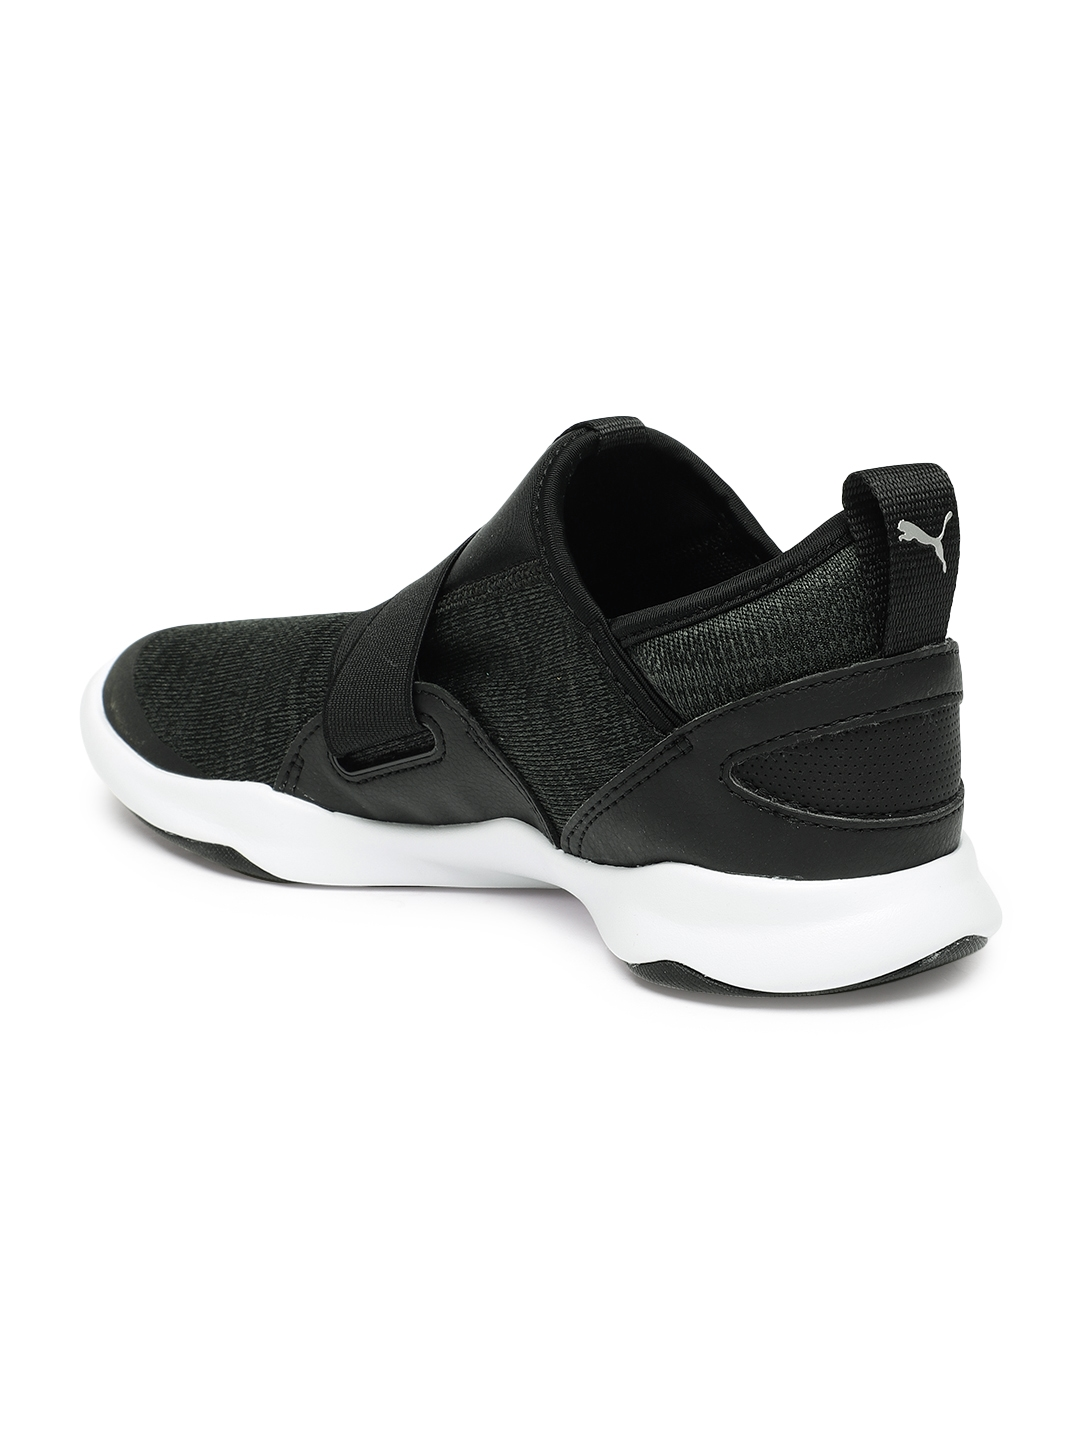 1b939b25c3642f Buy Puma Women Black Dare AC Casual Sneakers - Casual Shoes for ...